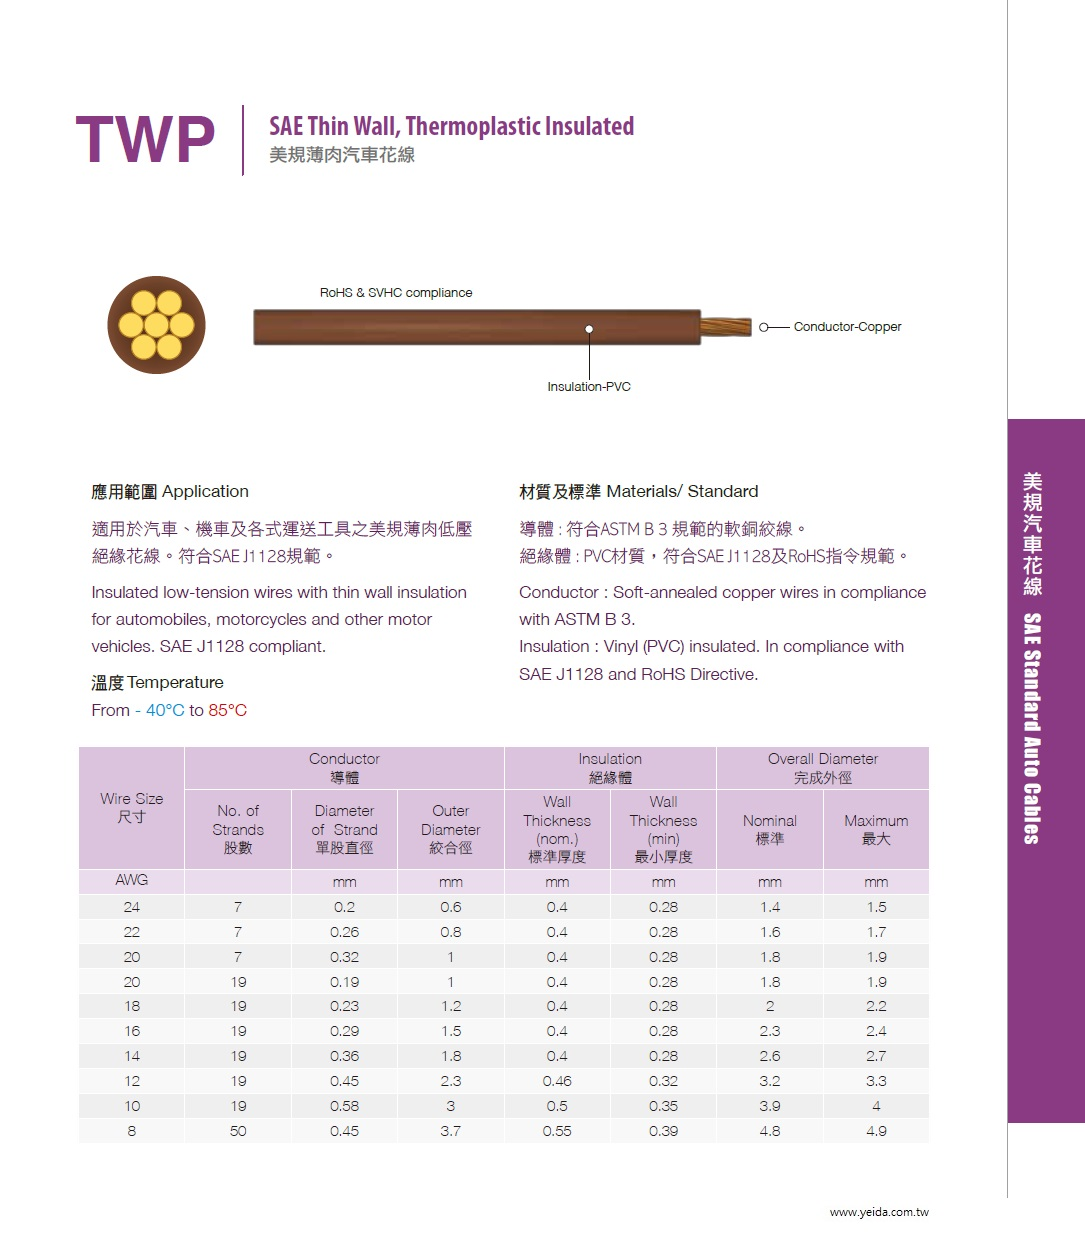 TWP SAE J1128 Thin Wall, Thermoplastic Insulated PVC美規薄肉汽車花線產品圖